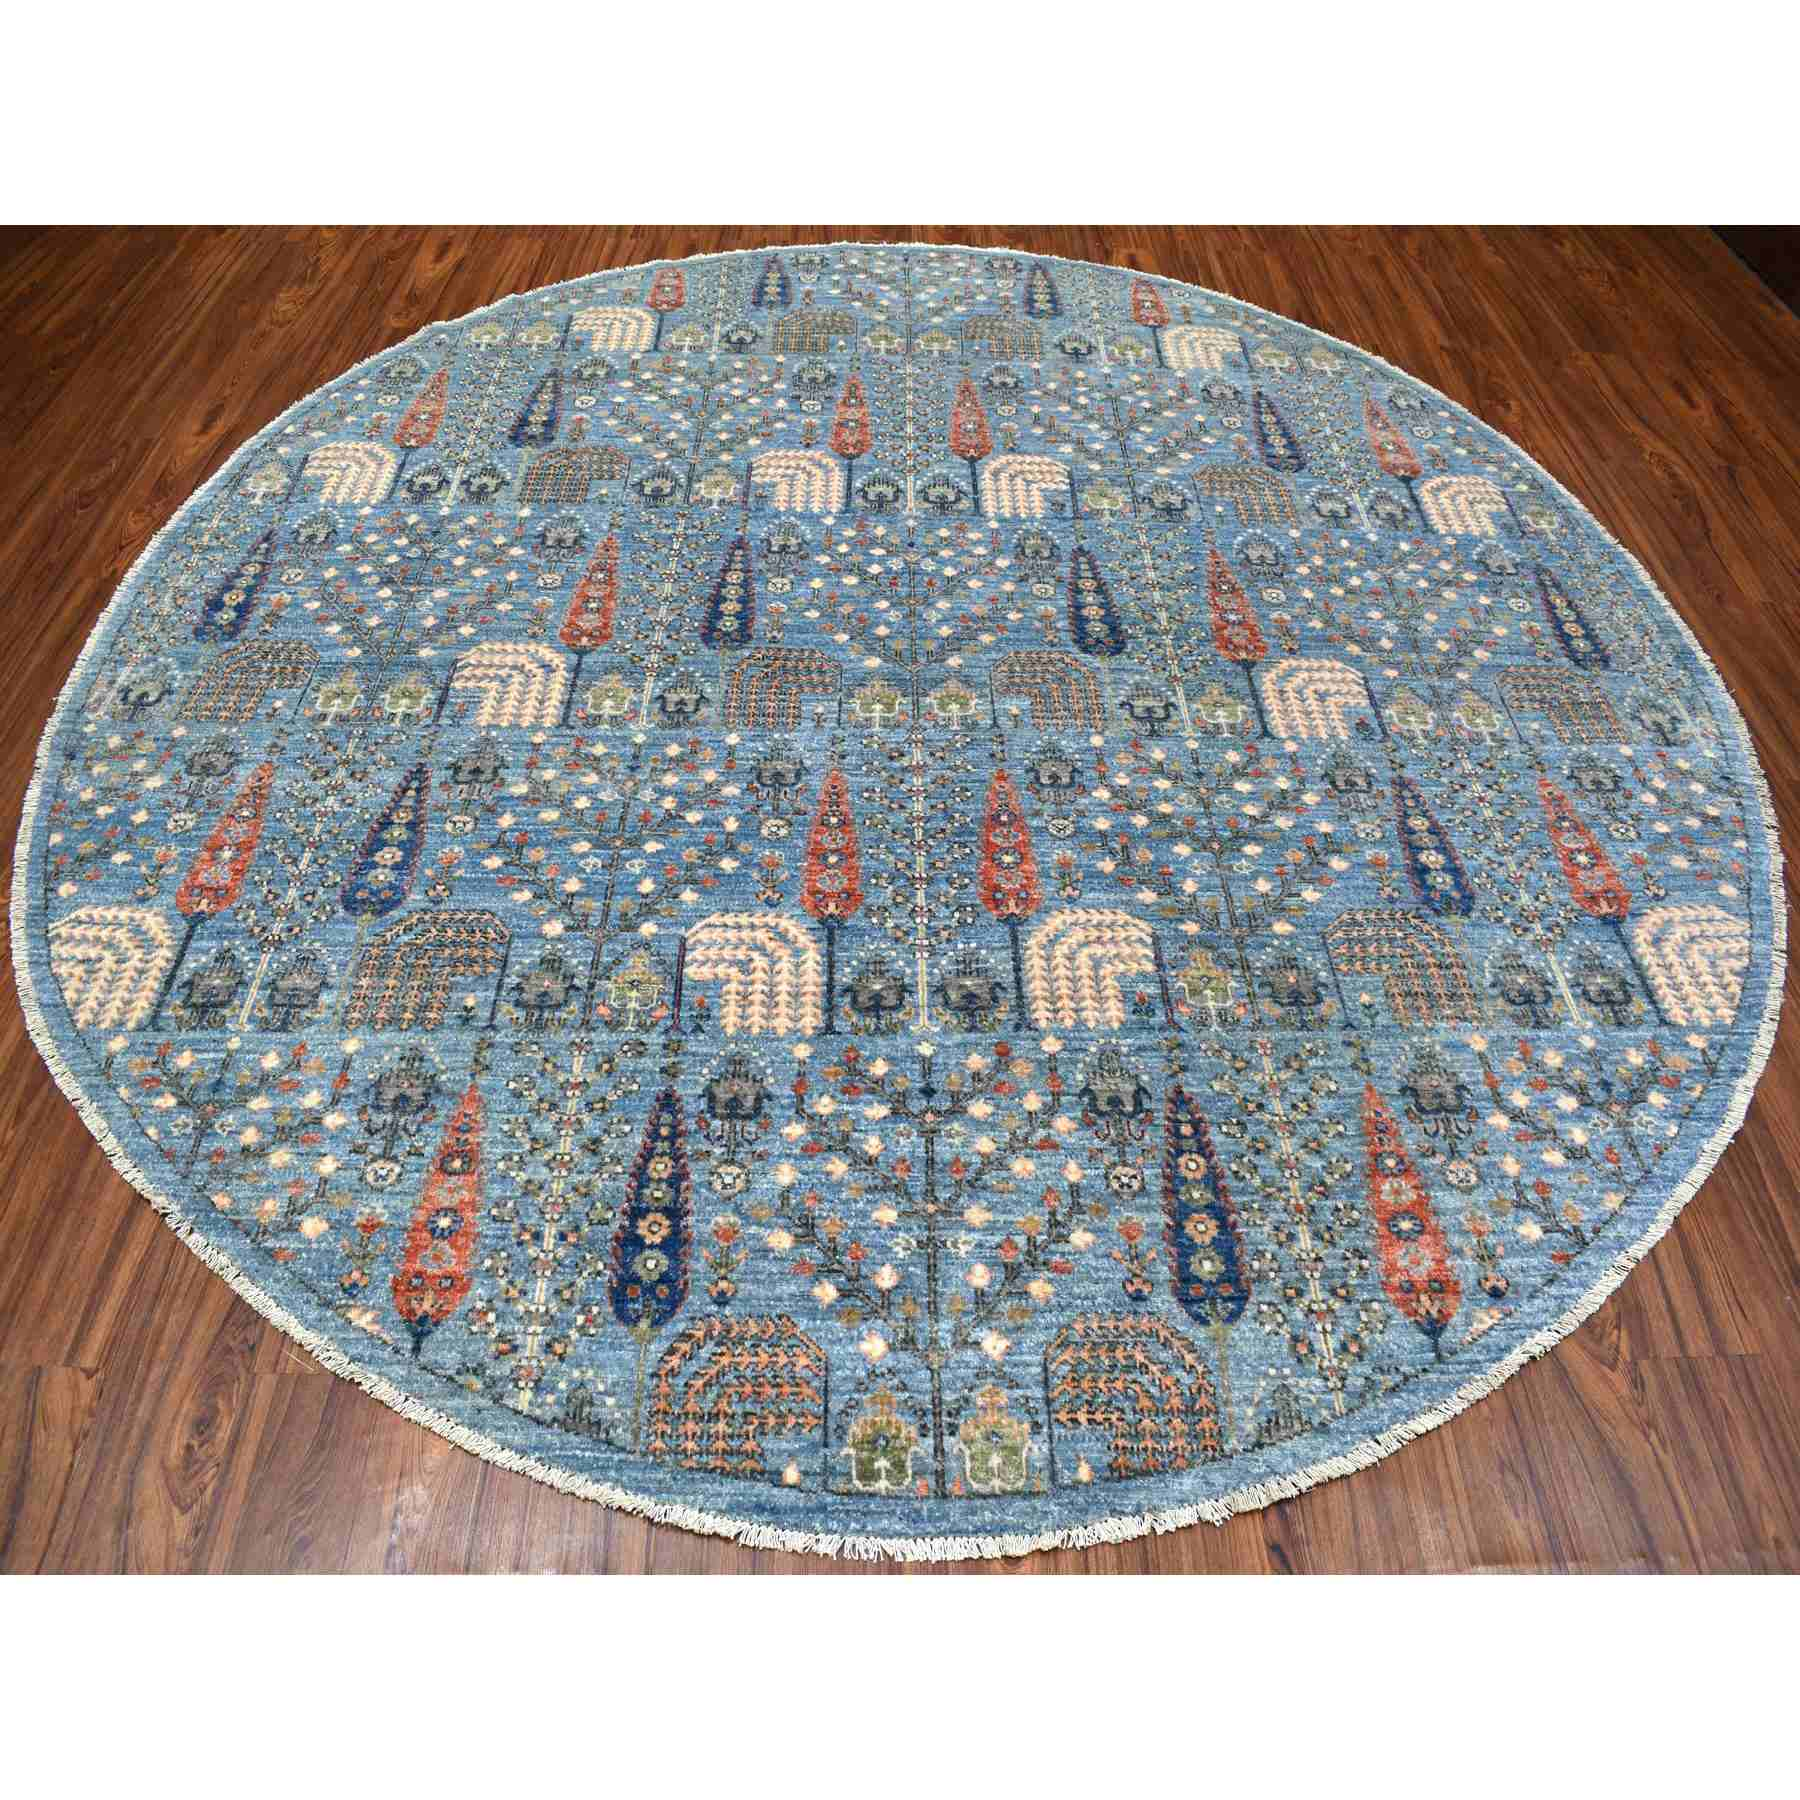 Oushak-And-Peshawar-Hand-Knotted-Rug-279550